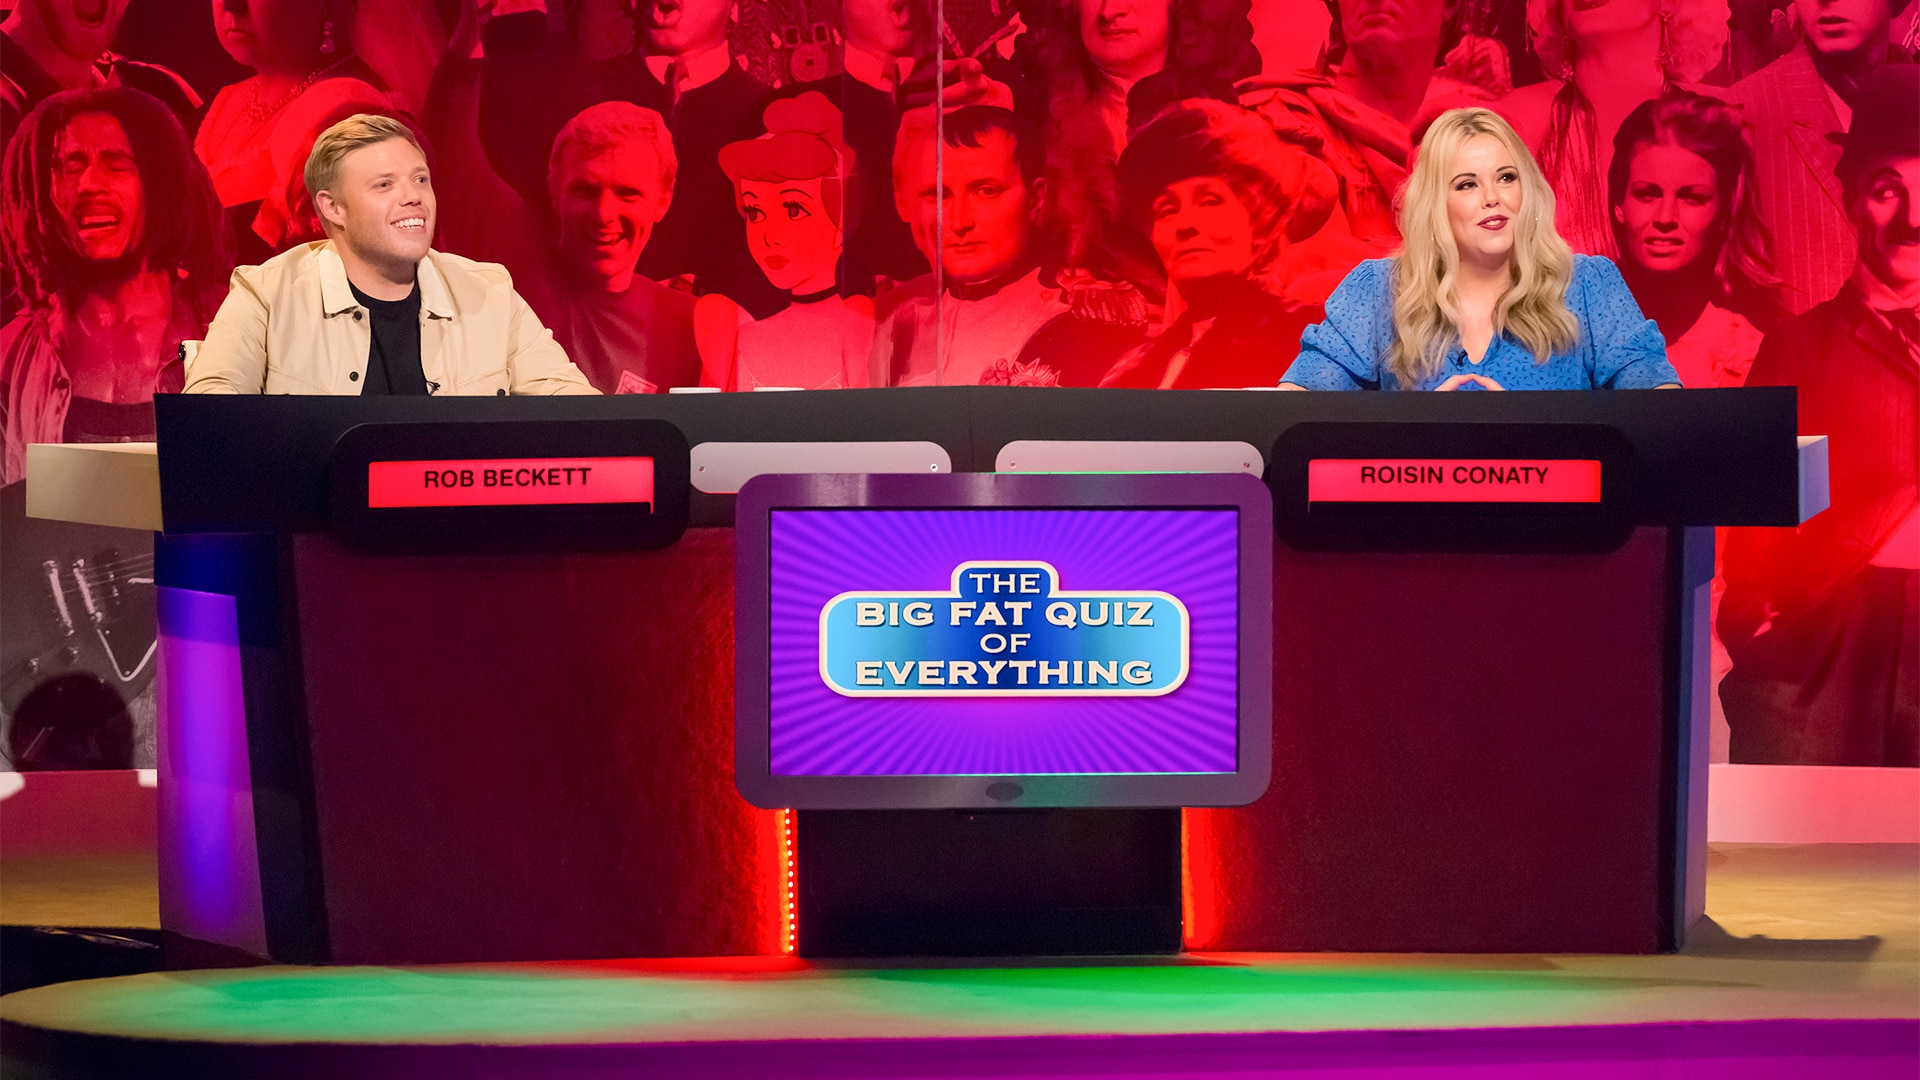 Big Fat Quiz All 4 (inches) how much do you thighs spread out when you sit down? big fat quiz all 4